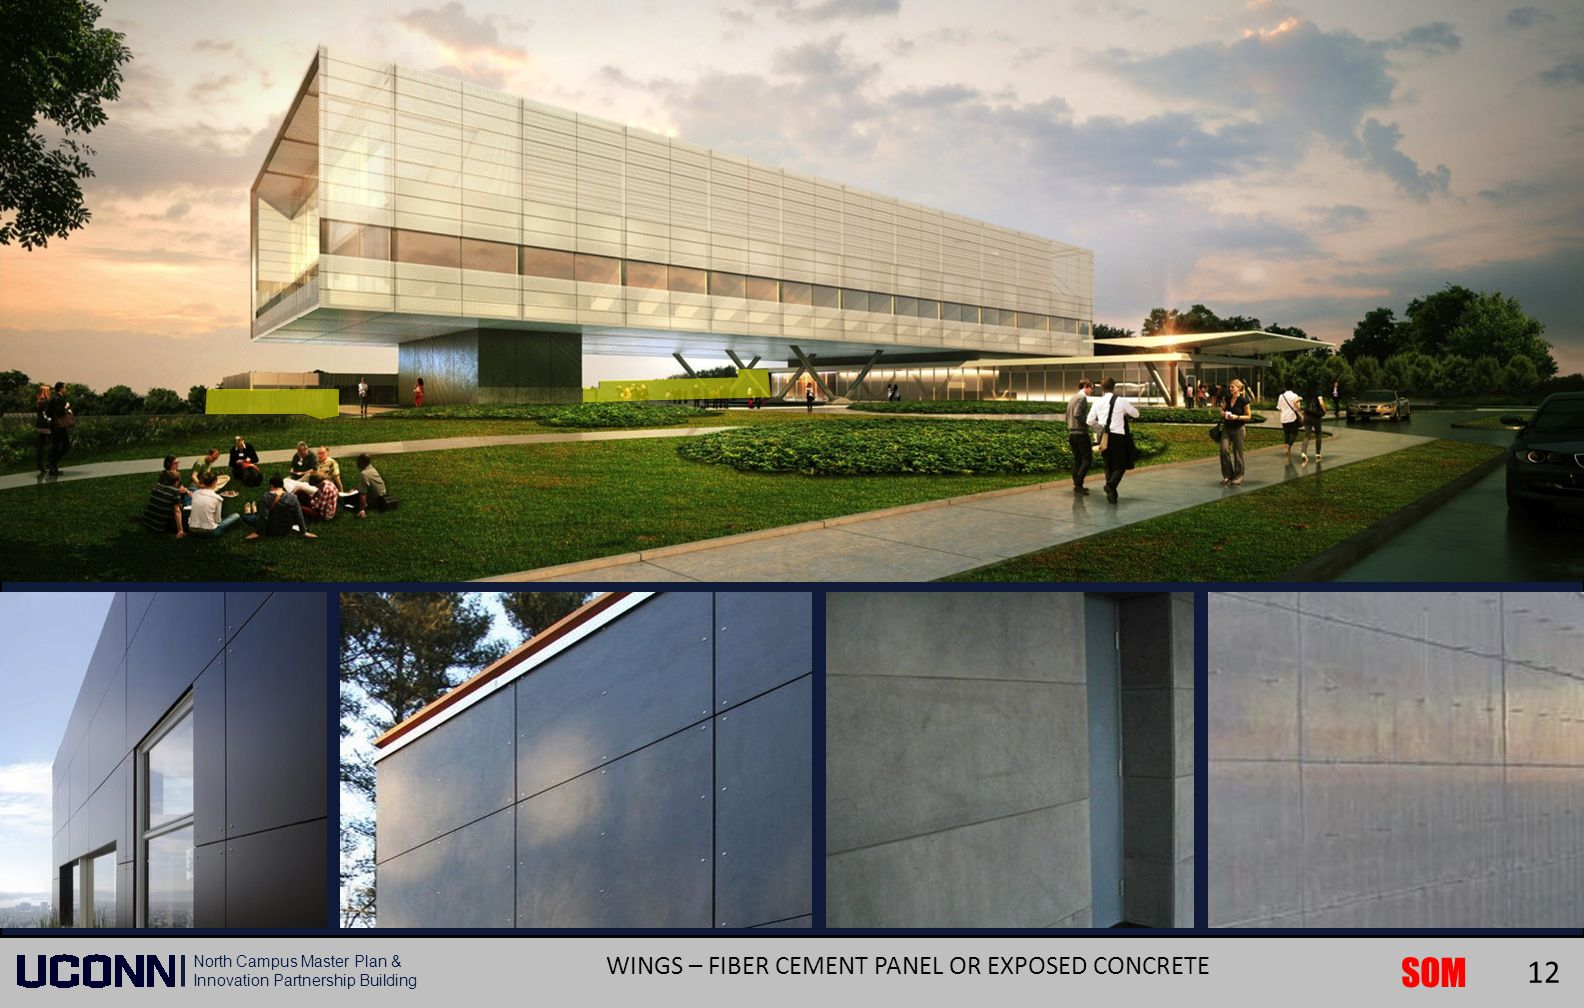 SOM North Campus Master Plan & Innovation Partnership Building WINGS – FIBER CEMENT PANEL OR EXPOSED CONCRETE 12